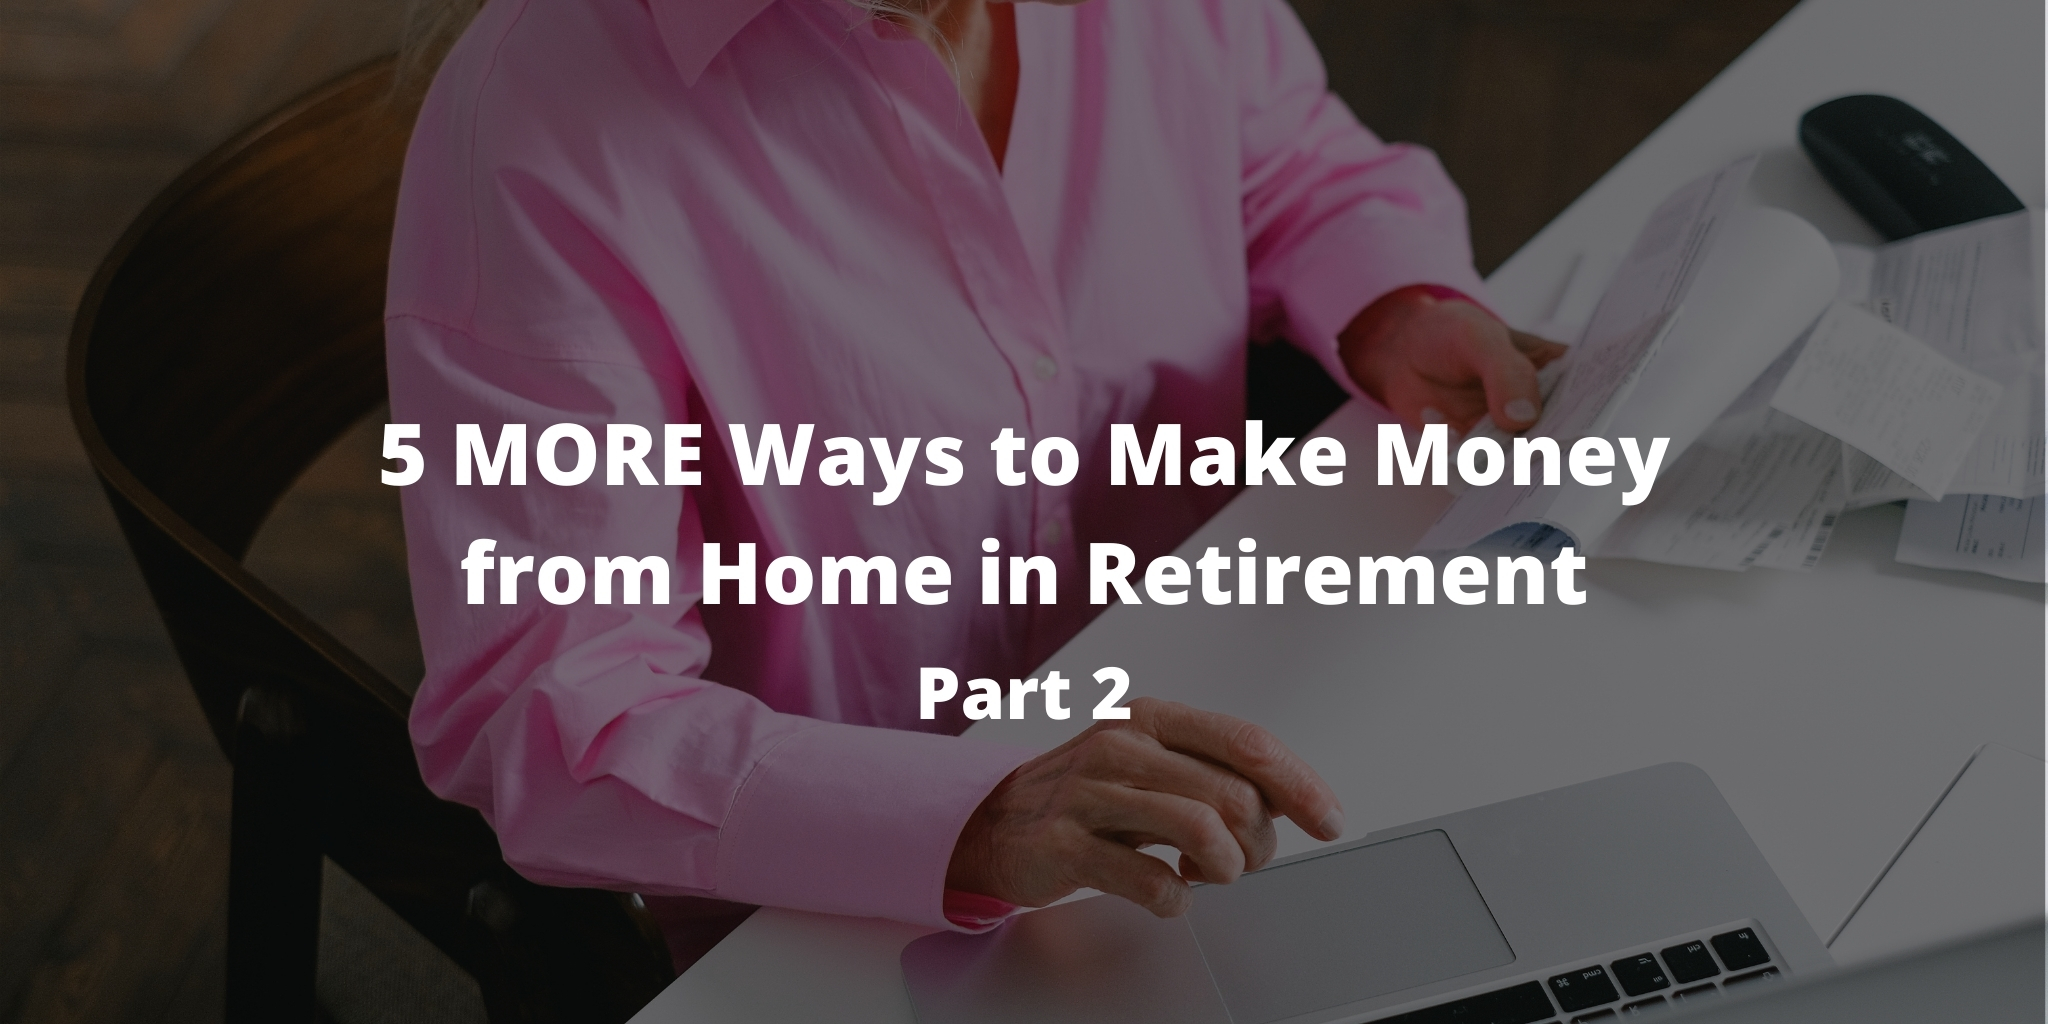 5 MORE Ways to Make Money from Home in Retirement